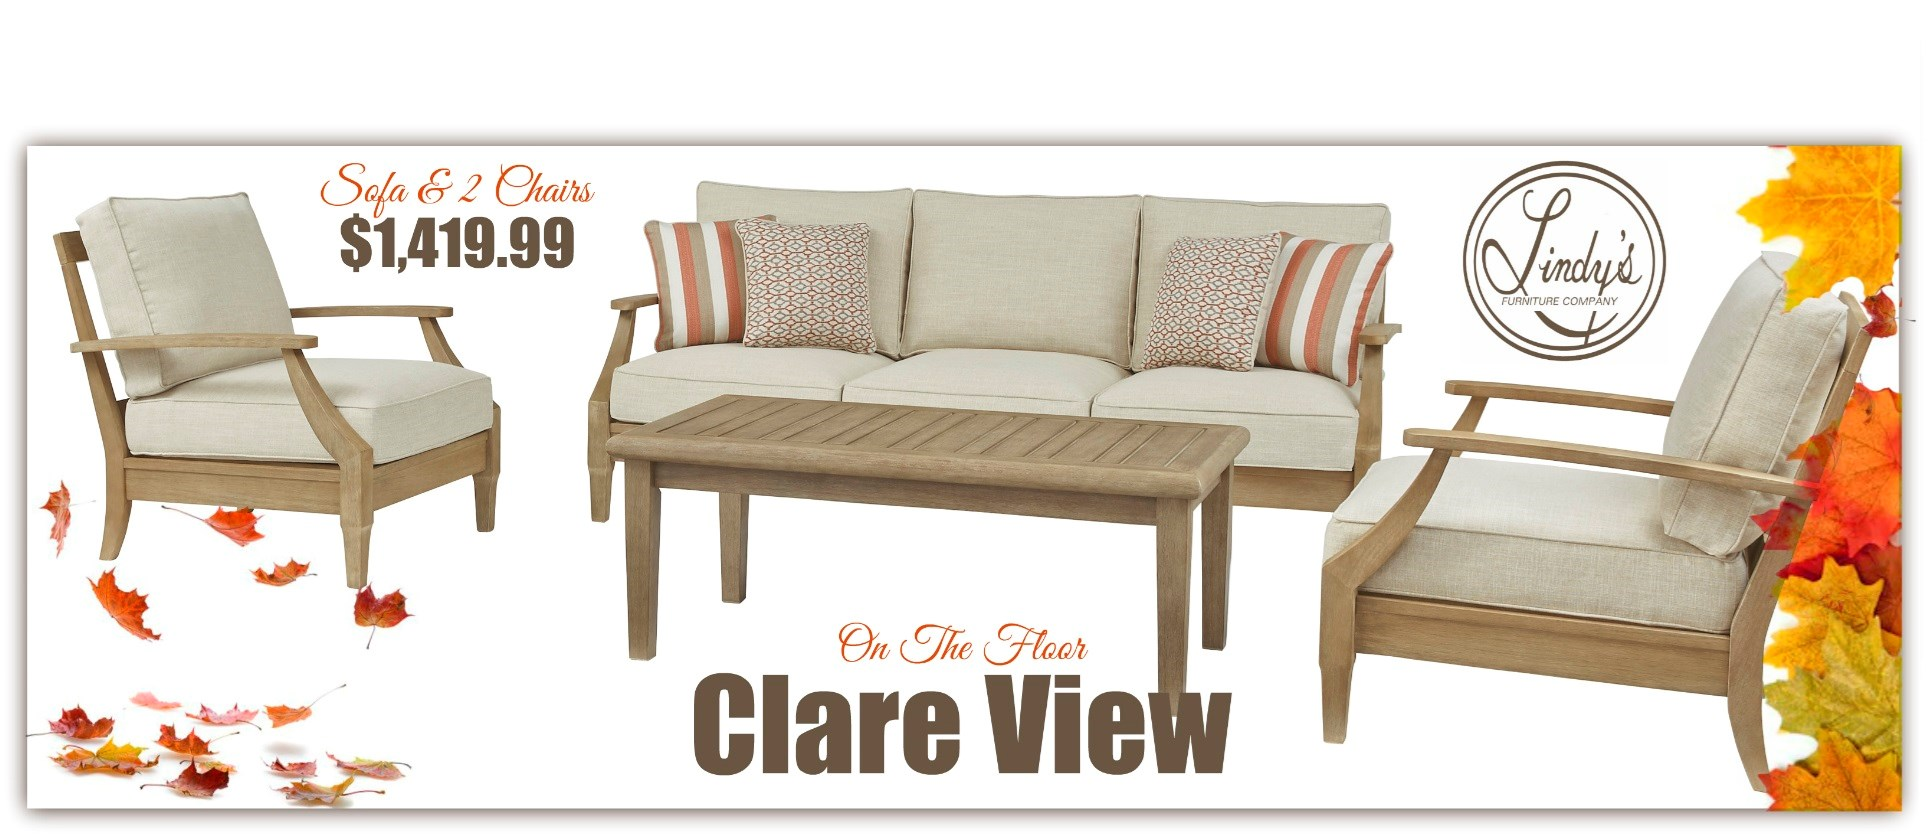 Clare View- Sofa 2ch- FALL